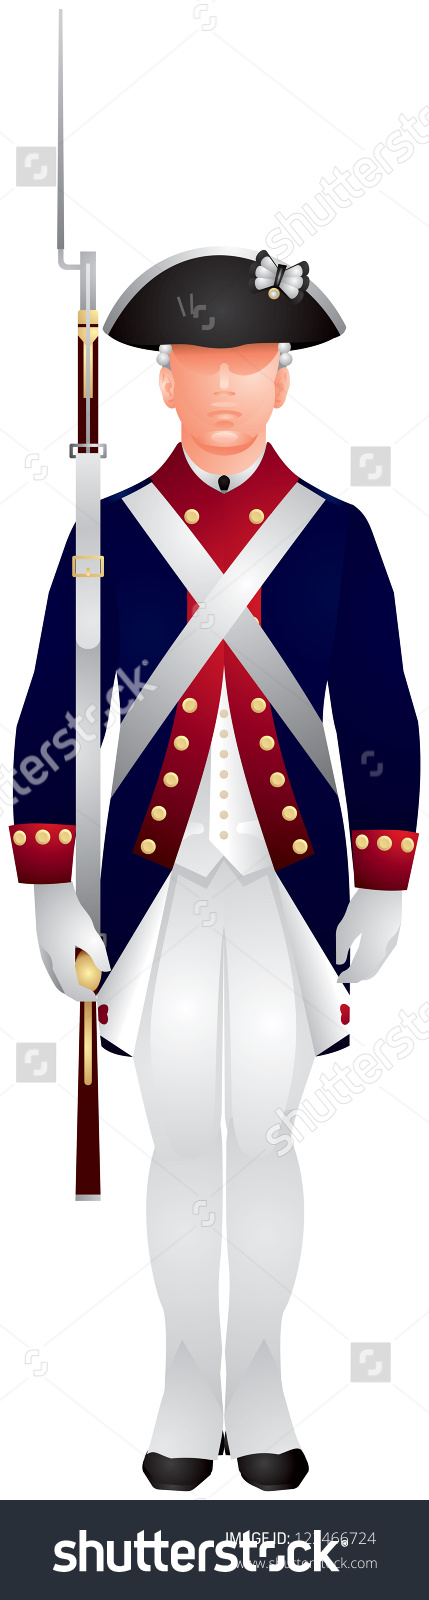 American Revolutionary War Soldier Continental Army Stock Vector.